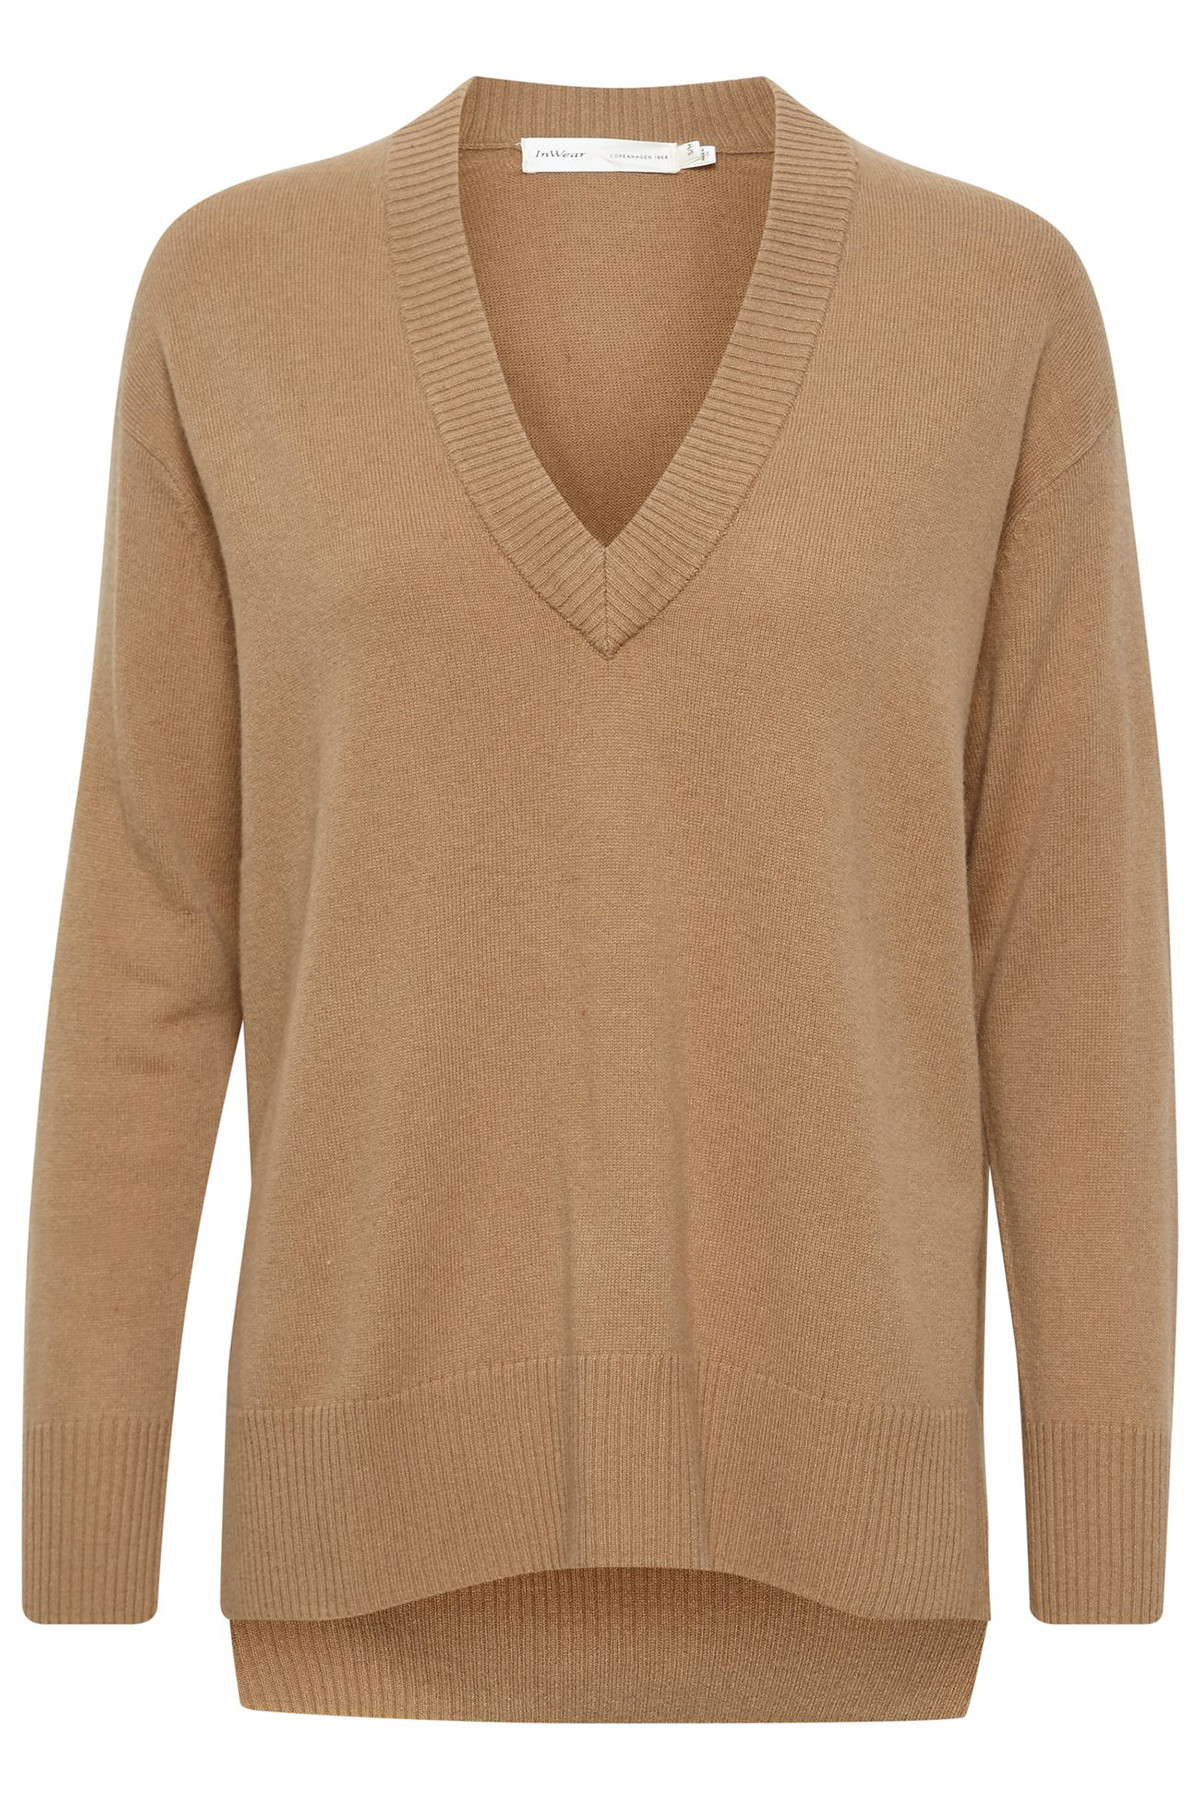 Image of   InWear IRISIW V-NECK PULLOVER 30104654 (Warm Camel 10117, XS/S)